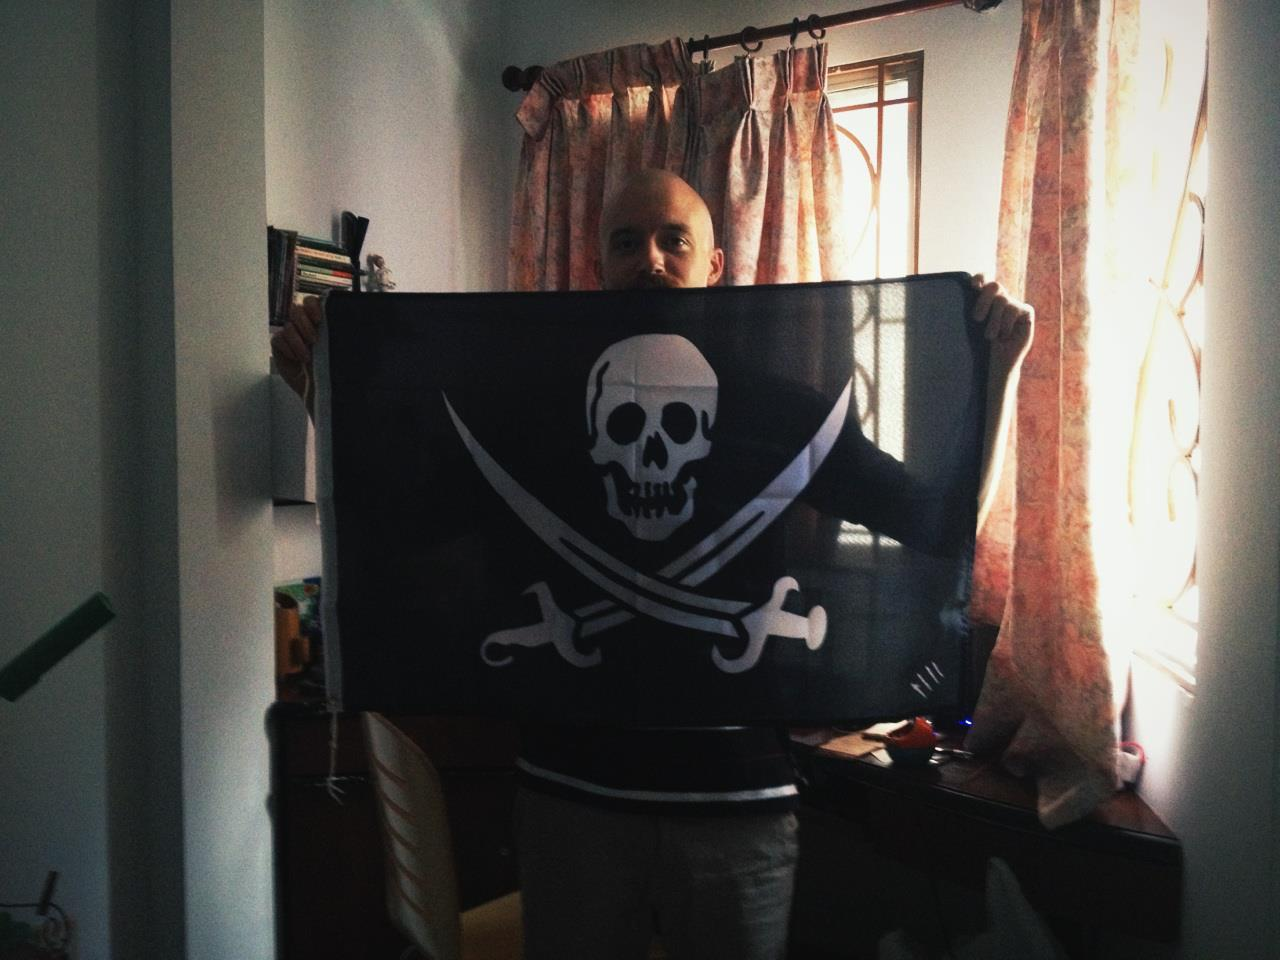 [Occupied] Saigon, Vietnam by Cap'n Paul Evans #PIRATE   Make your own Flag, visit  http://thepirateflag.tumblr.com